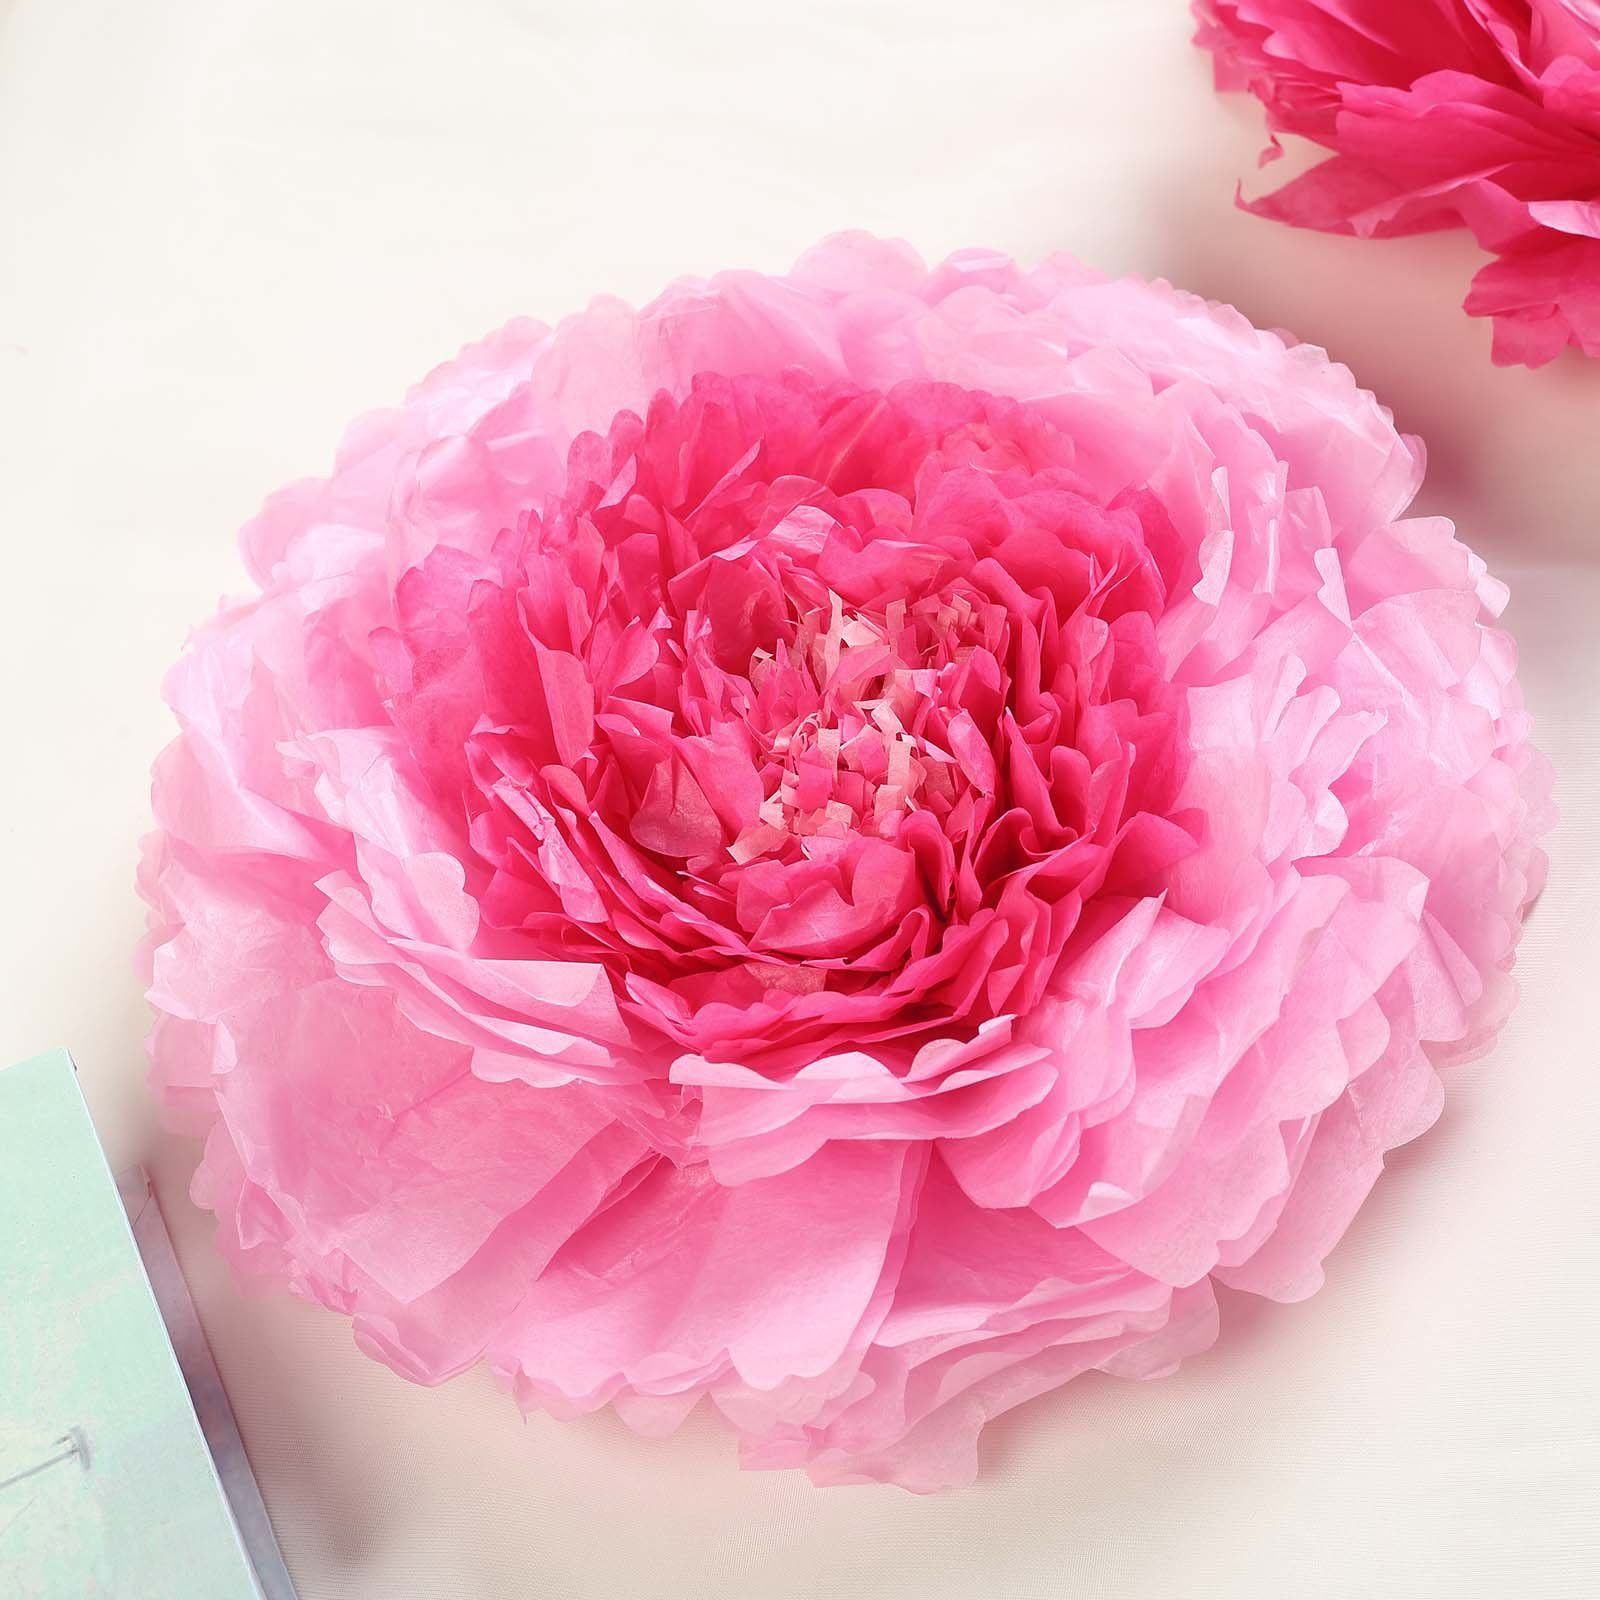 6 Multi Size Pack Carnation Pink Fushia 3d Wall Flowers Giant Tissue Paper Flowers 12 16 20 In 2020 Tissue Paper Flowers Paper Flowers Carnations